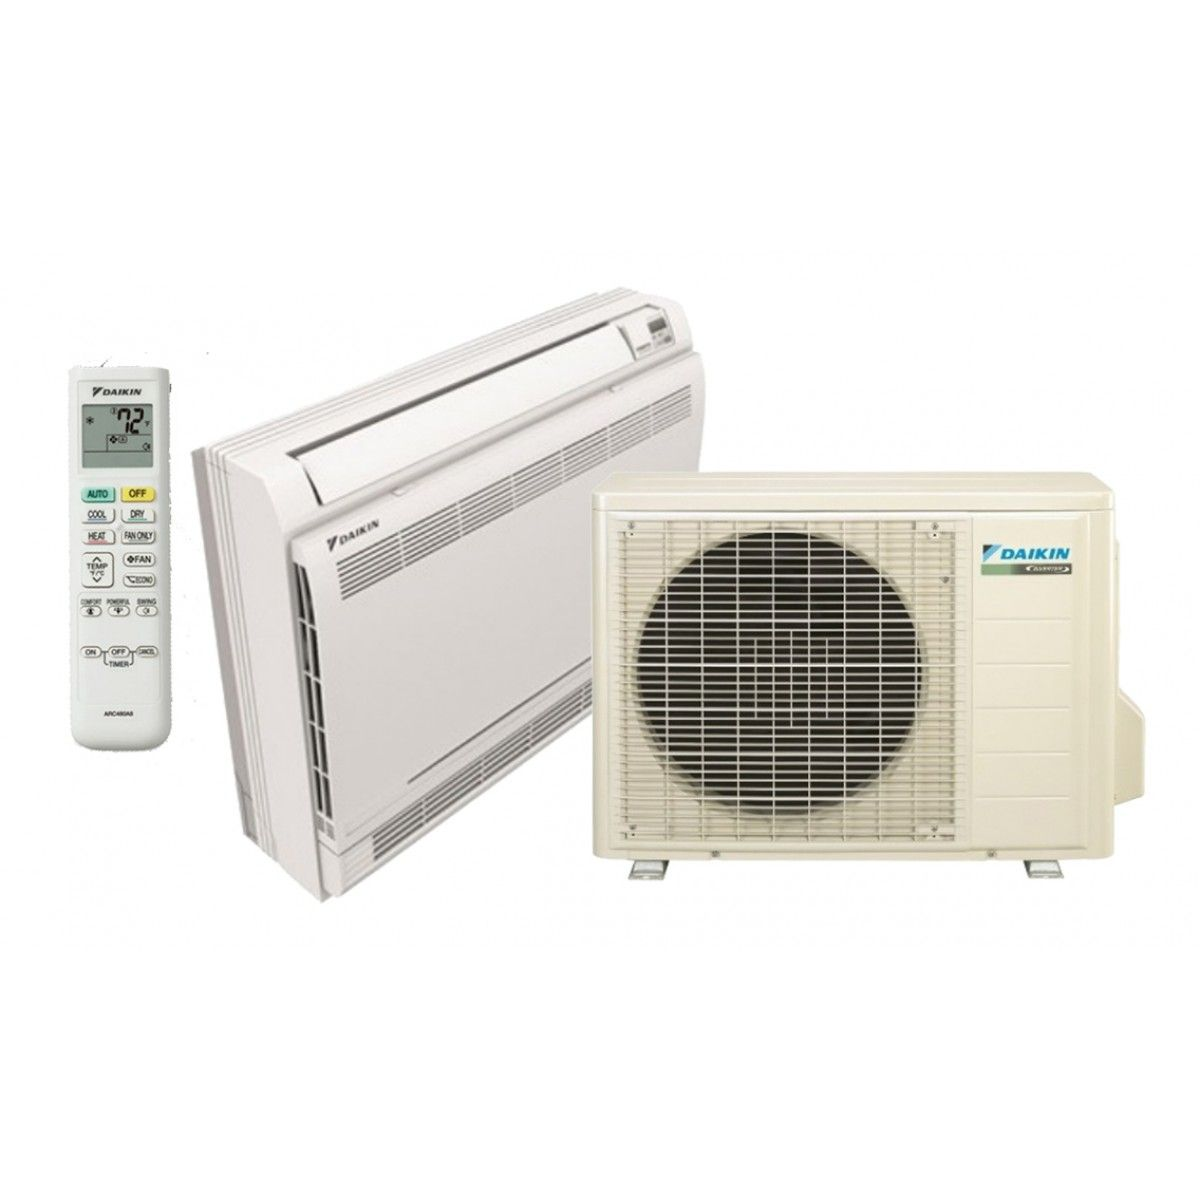 Daikin 12 k btu 20 seer floor mount heat pump system in Ductless ac